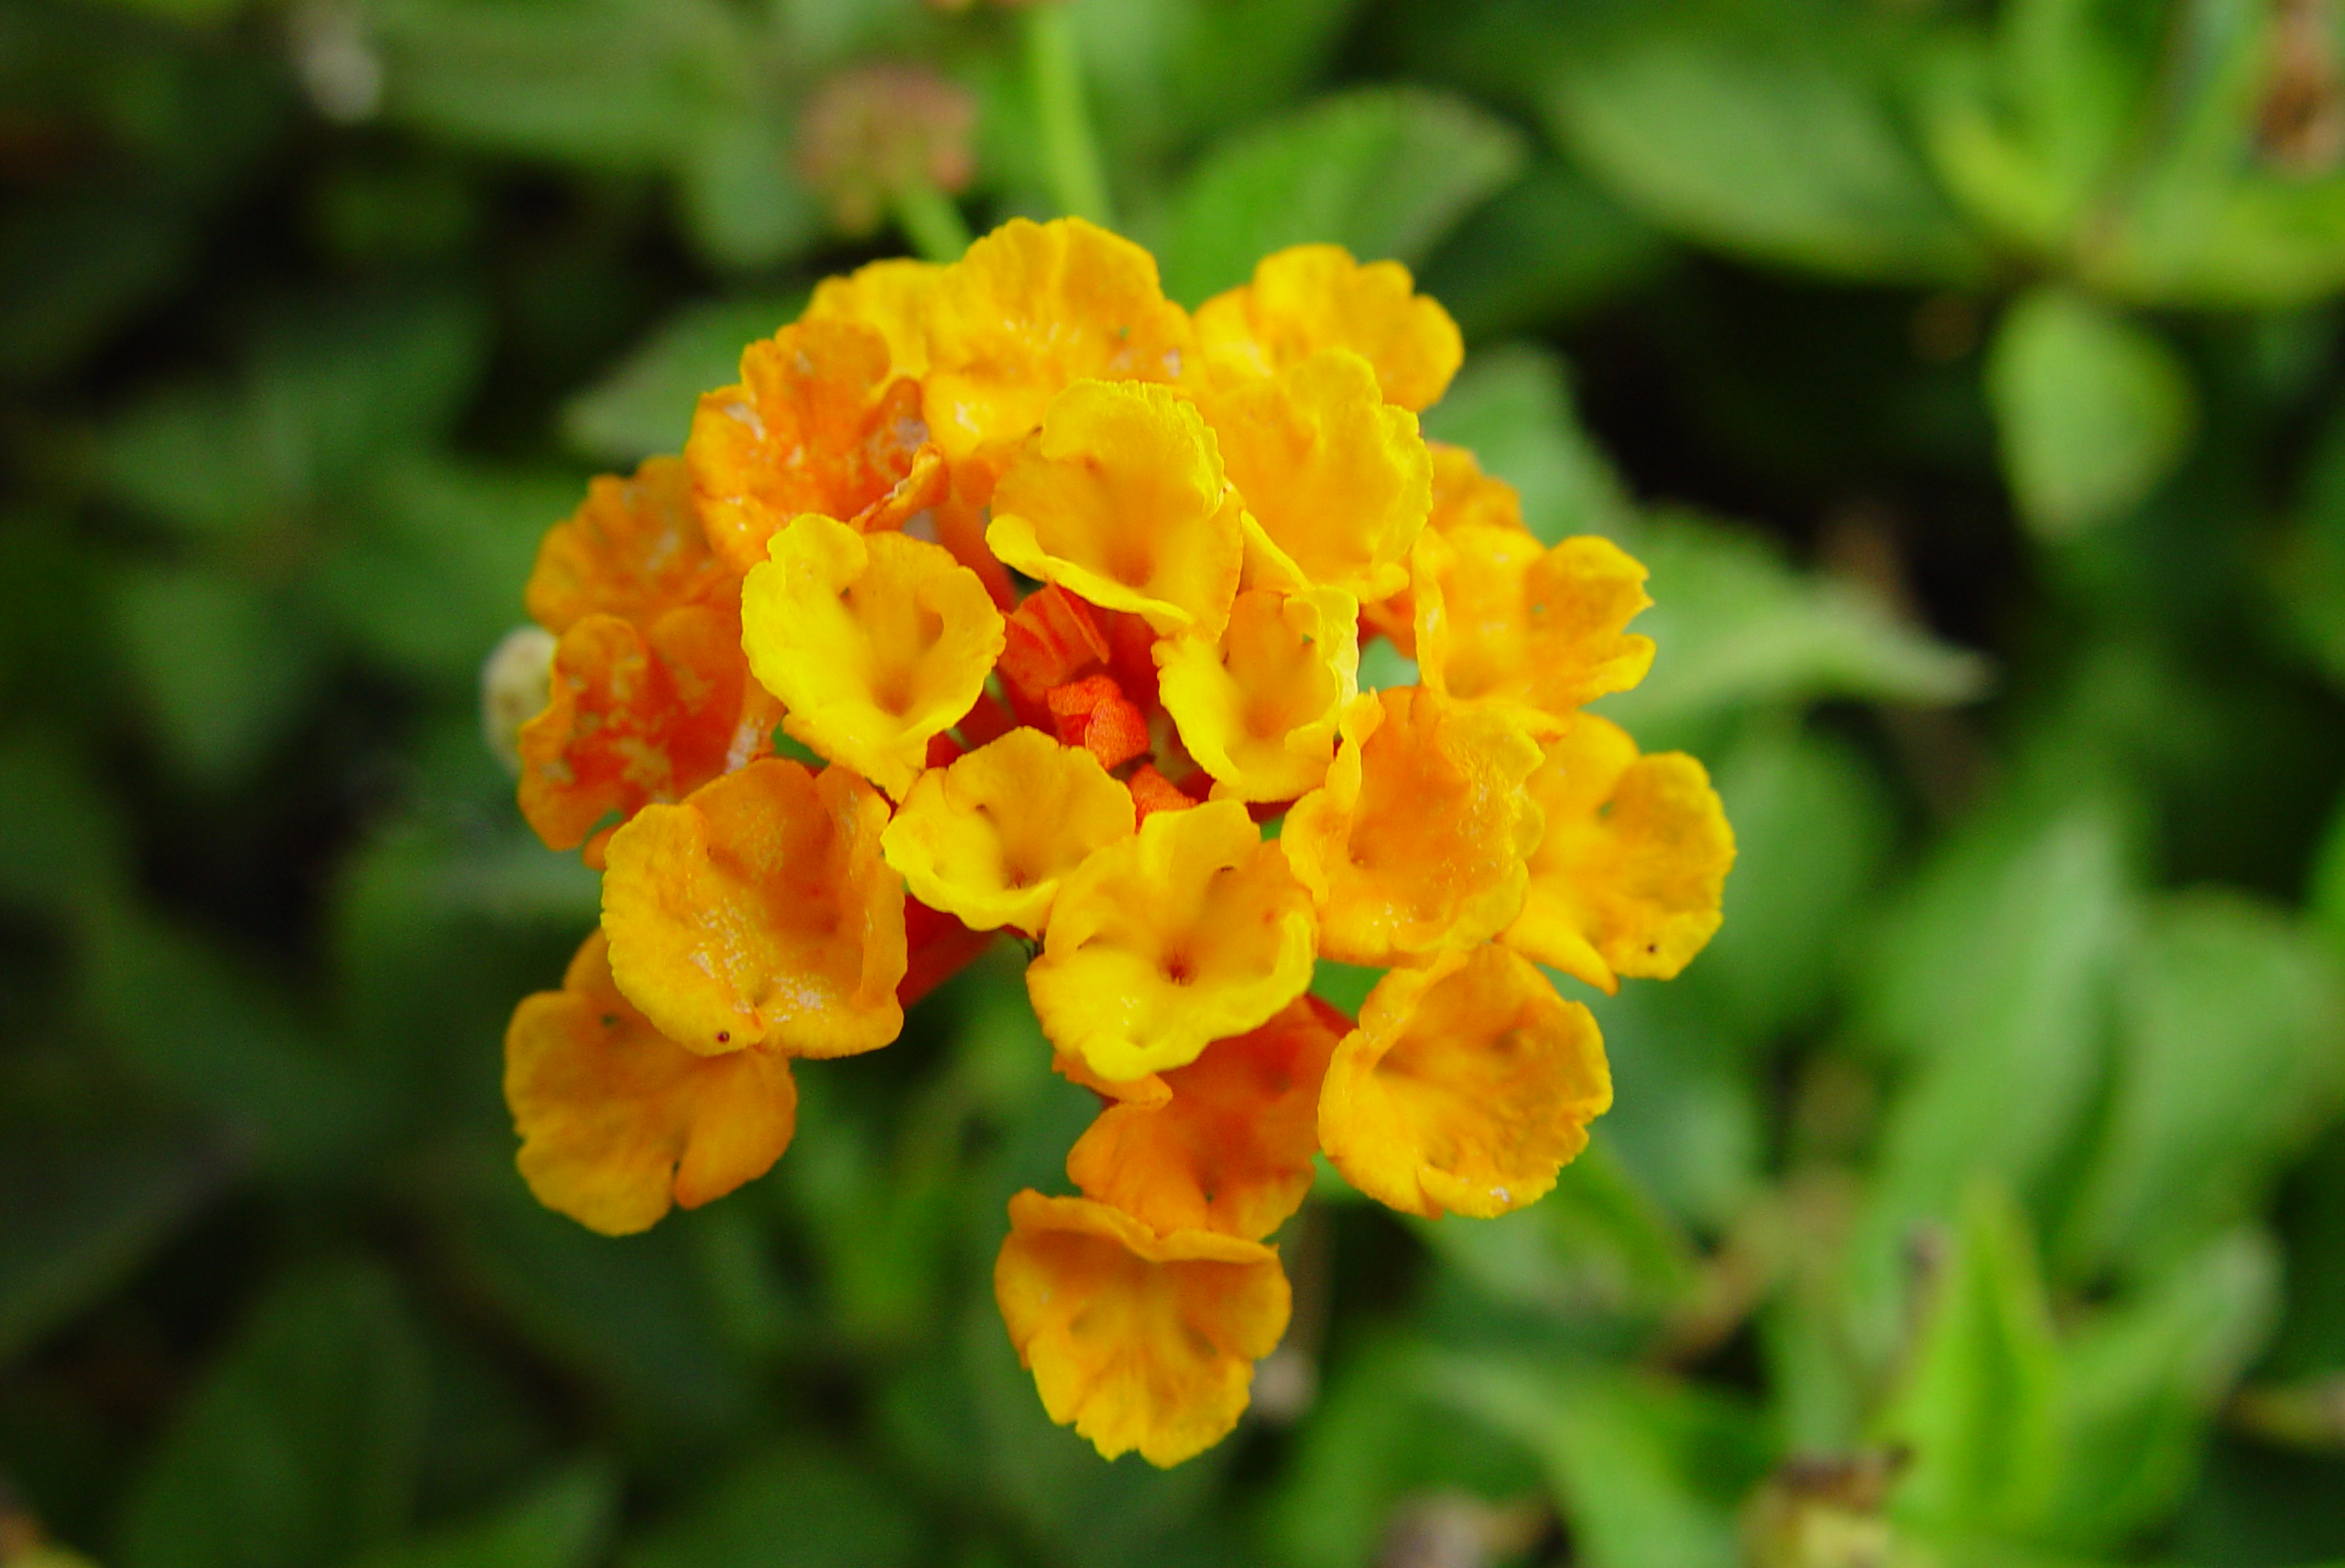 Free stock images of plants flowers and plants 3 izmirmasajfo